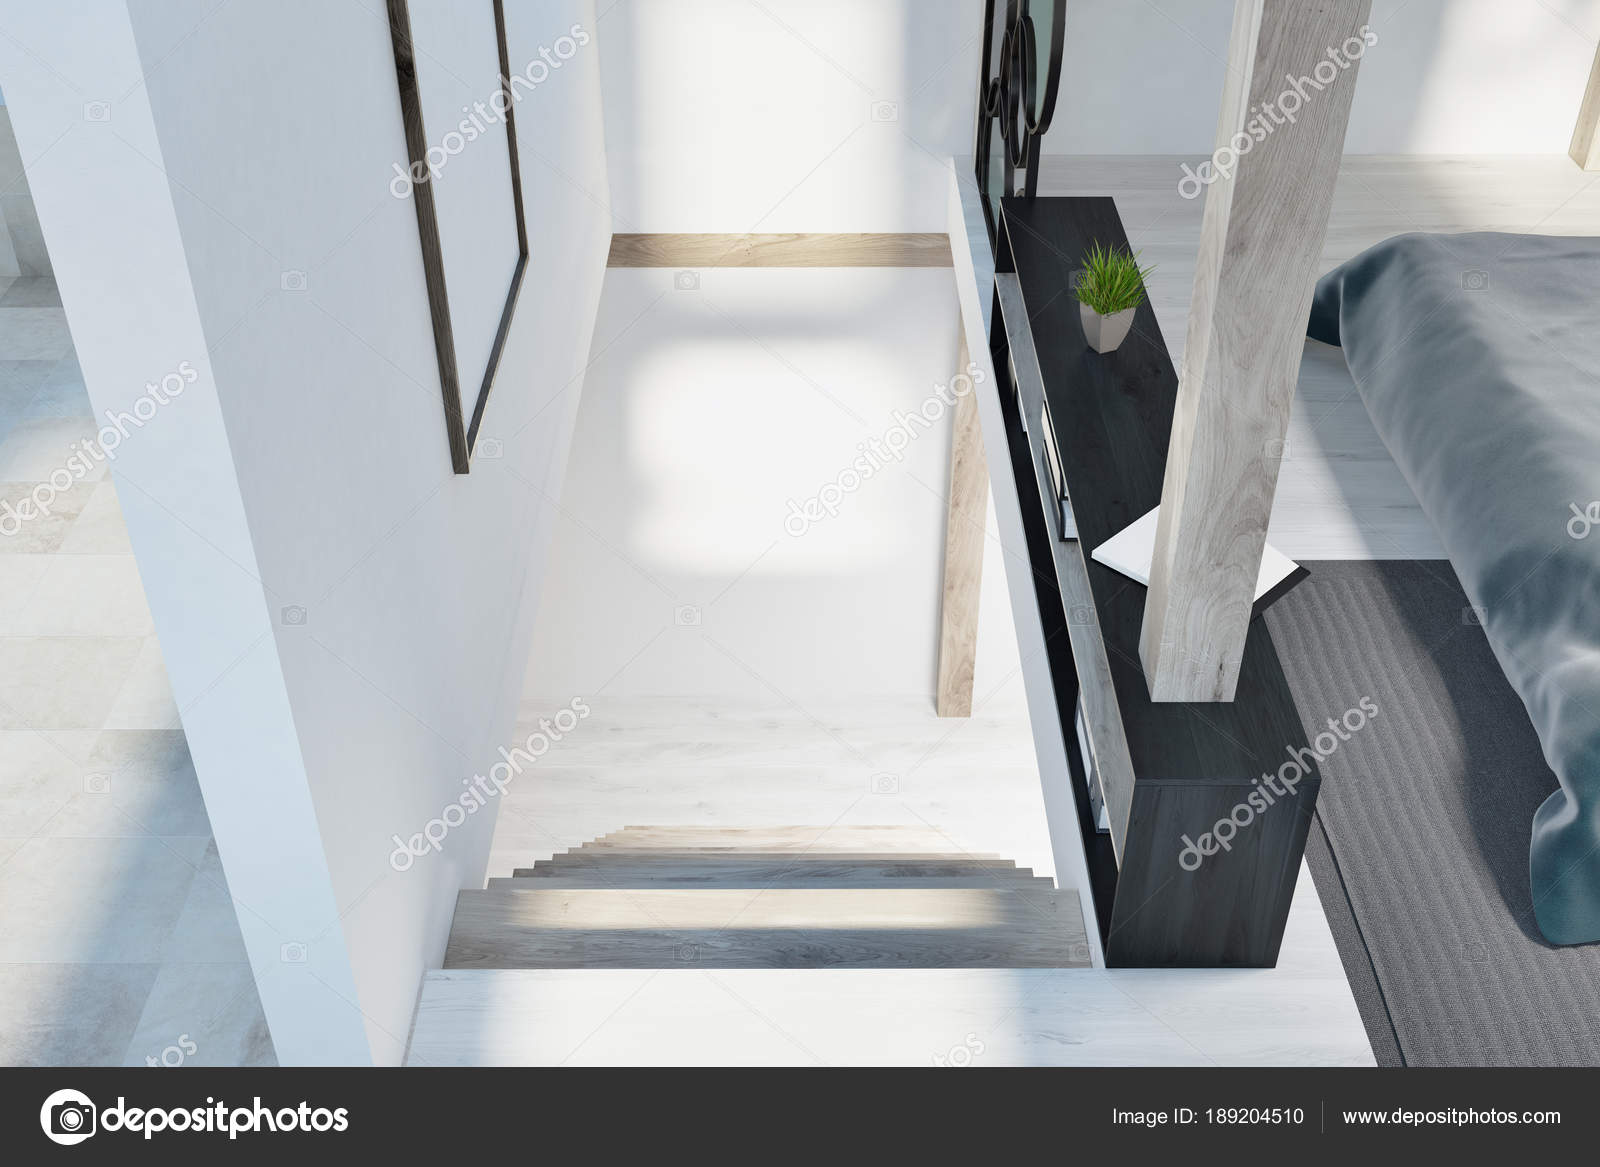 Attic Bedroom Interior With White Walls Windows In The Roof A Double Bed And Bookshelf Top View Of Stairs Poster On Wall